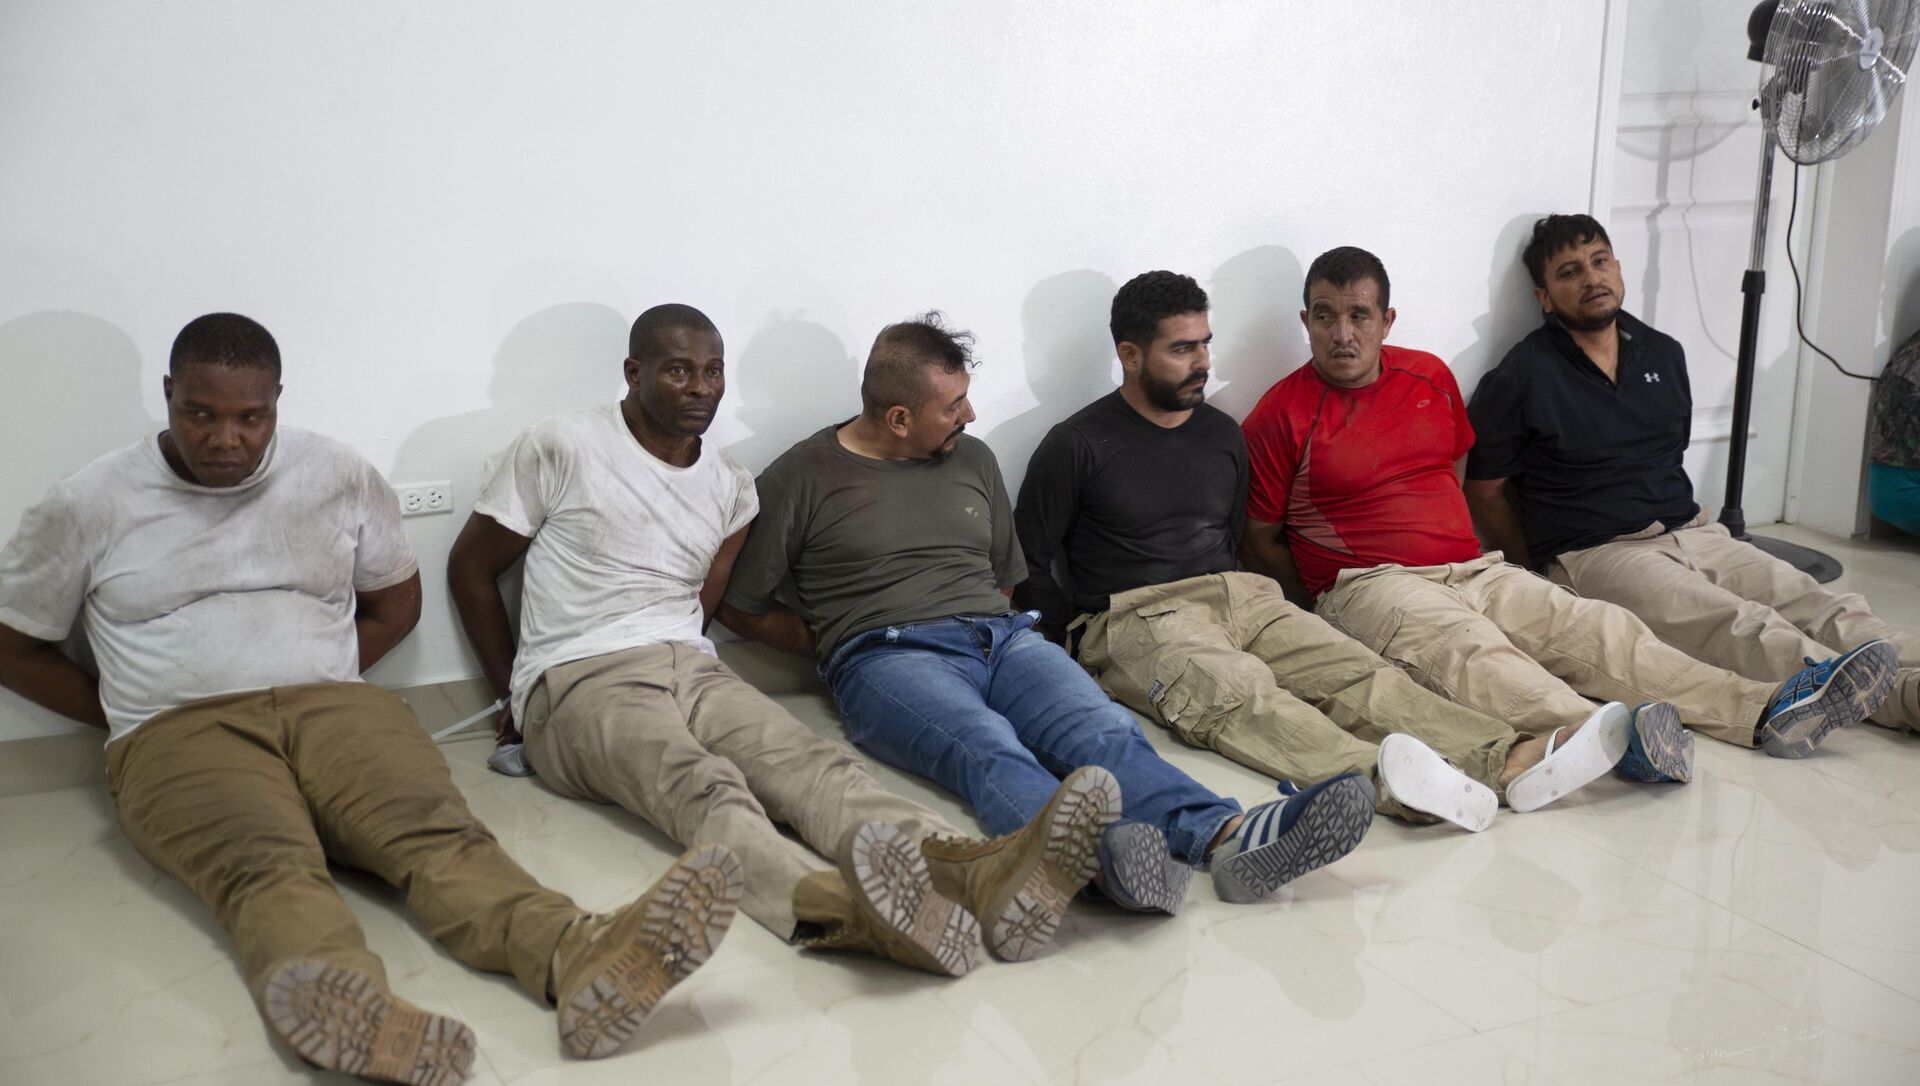 Suspects in the assassination of Haiti's President Jovenel Moise, among them Haitian-American citizens James Solages, left, and Joseph Vincent, second left, are shown to the media at the General Direction of the police in Port-au-Prince, Haiti, Thursday, July 8, 2021 - Sputnik International, 1920, 30.07.2021